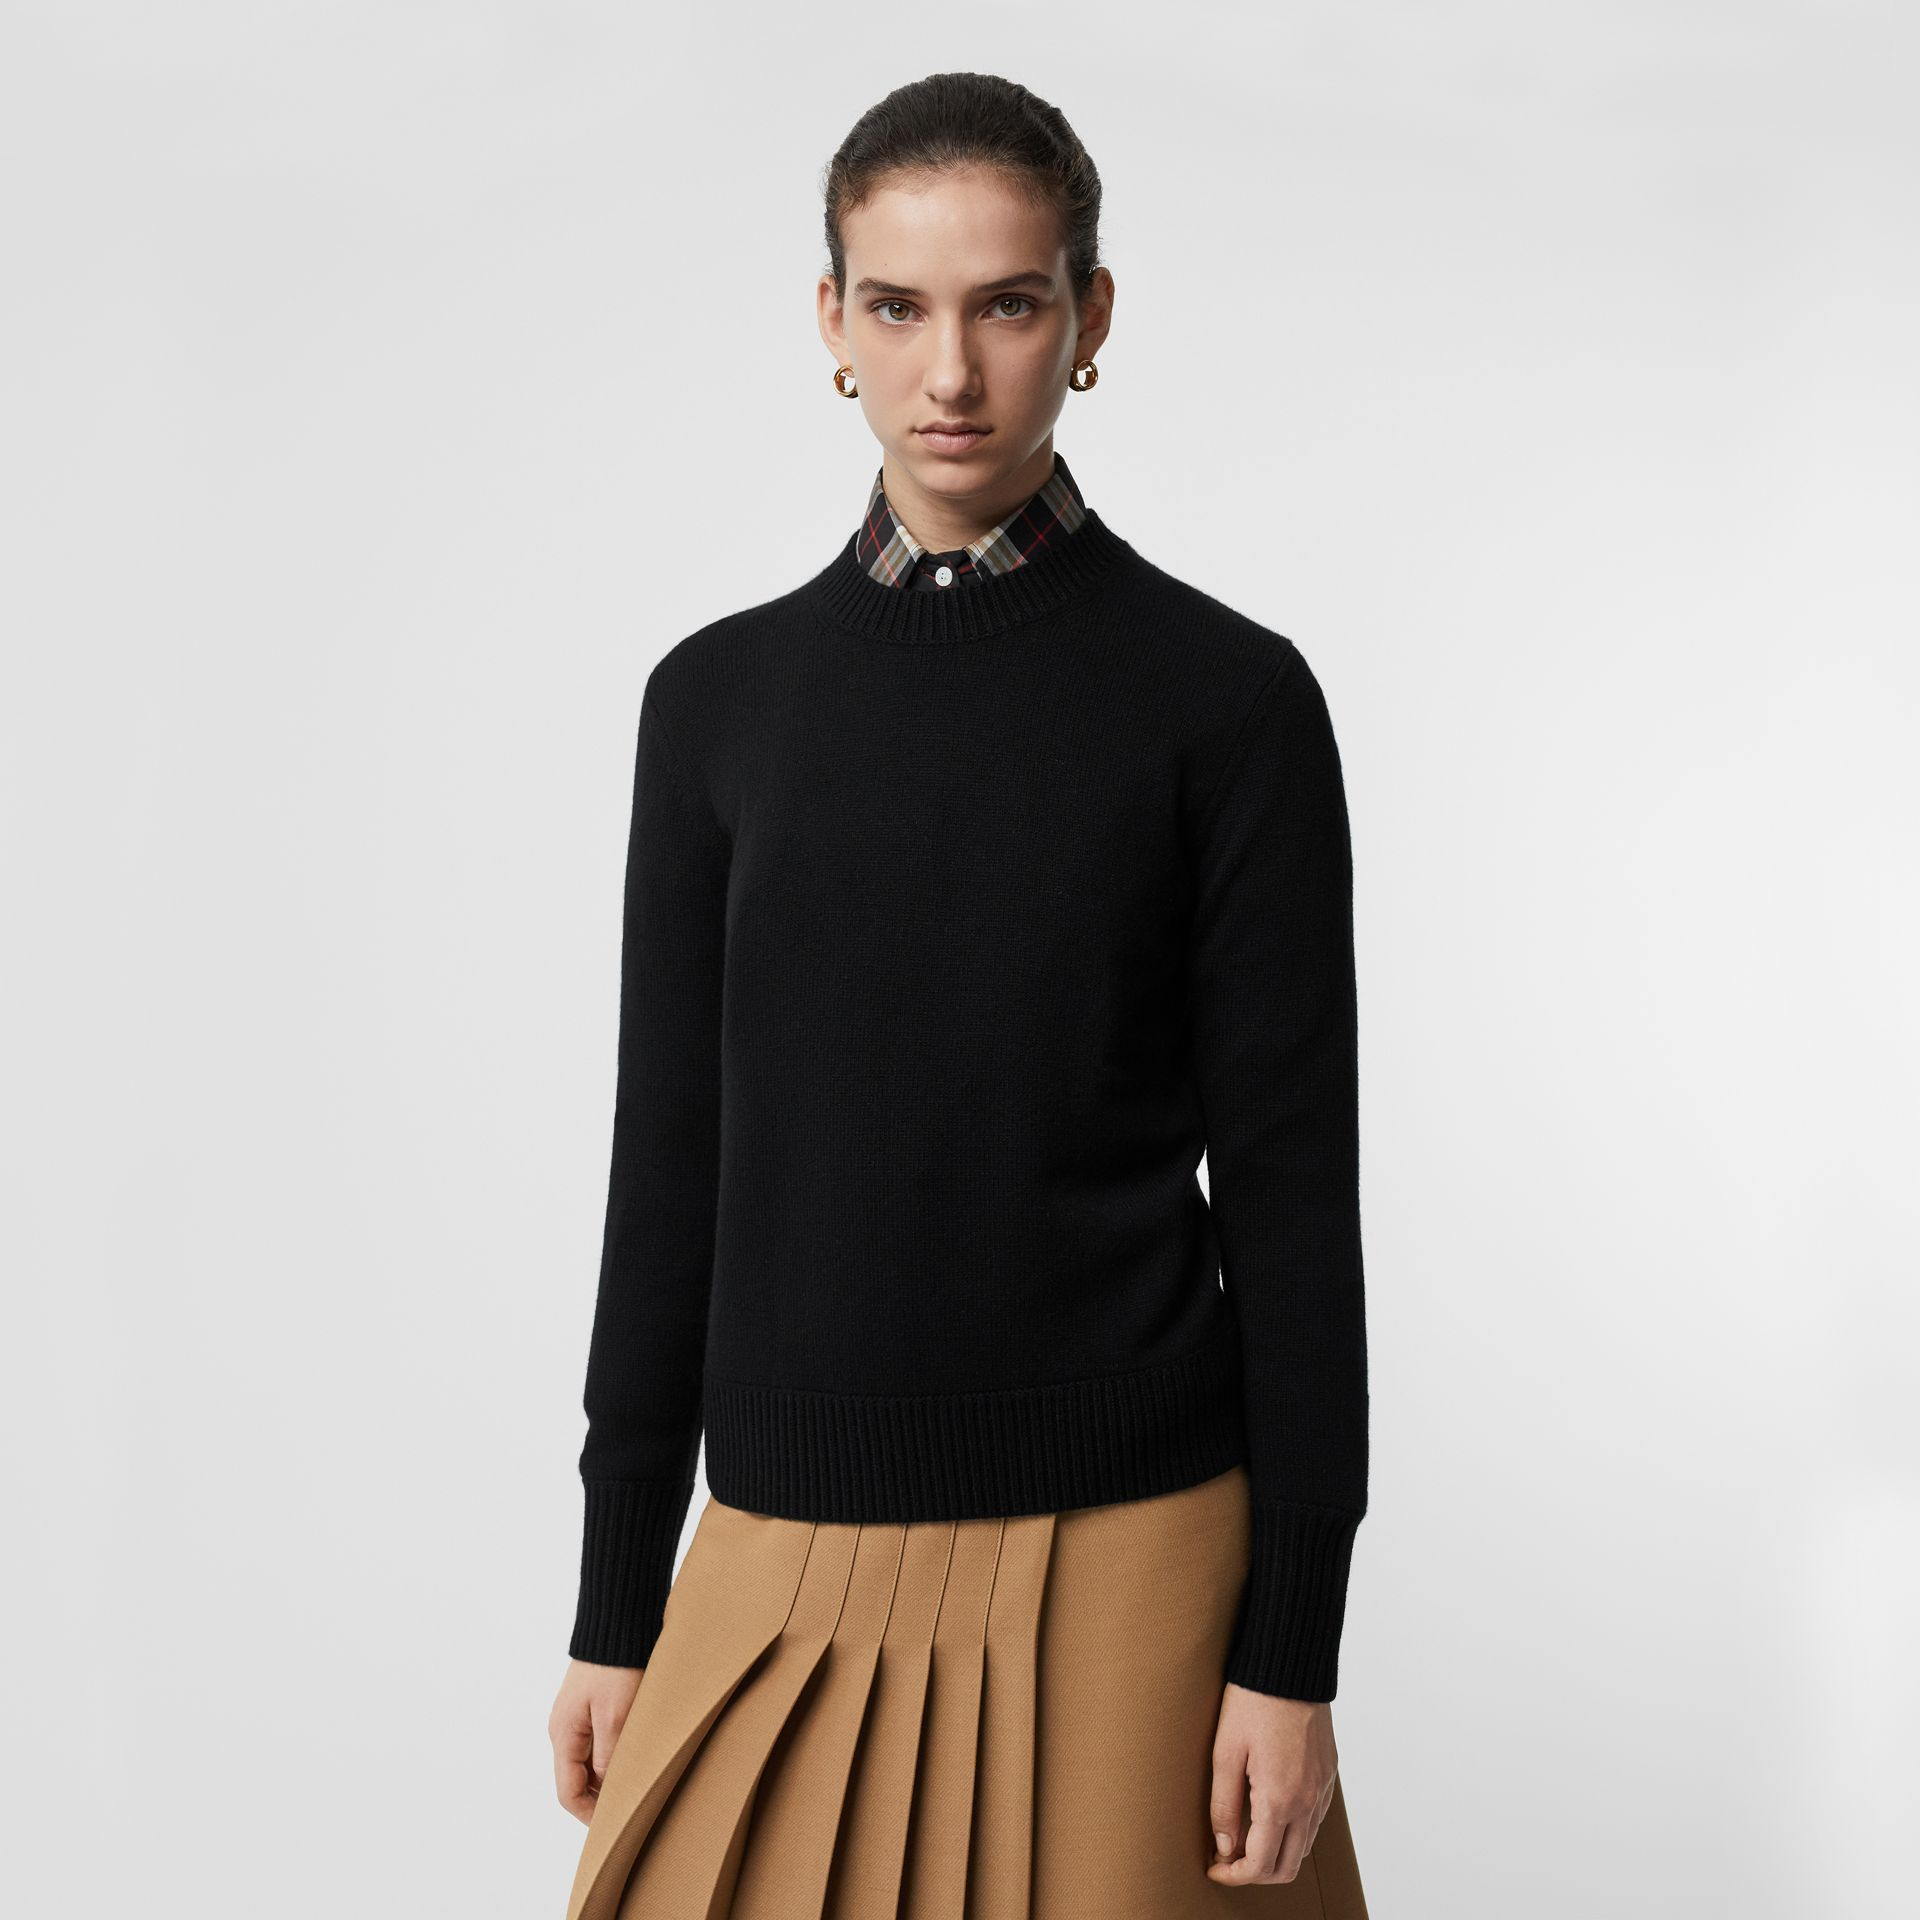 Embroidered Crest Cashmere Sweater in Black - Women | Burberry Hong Kong - gallery image 2